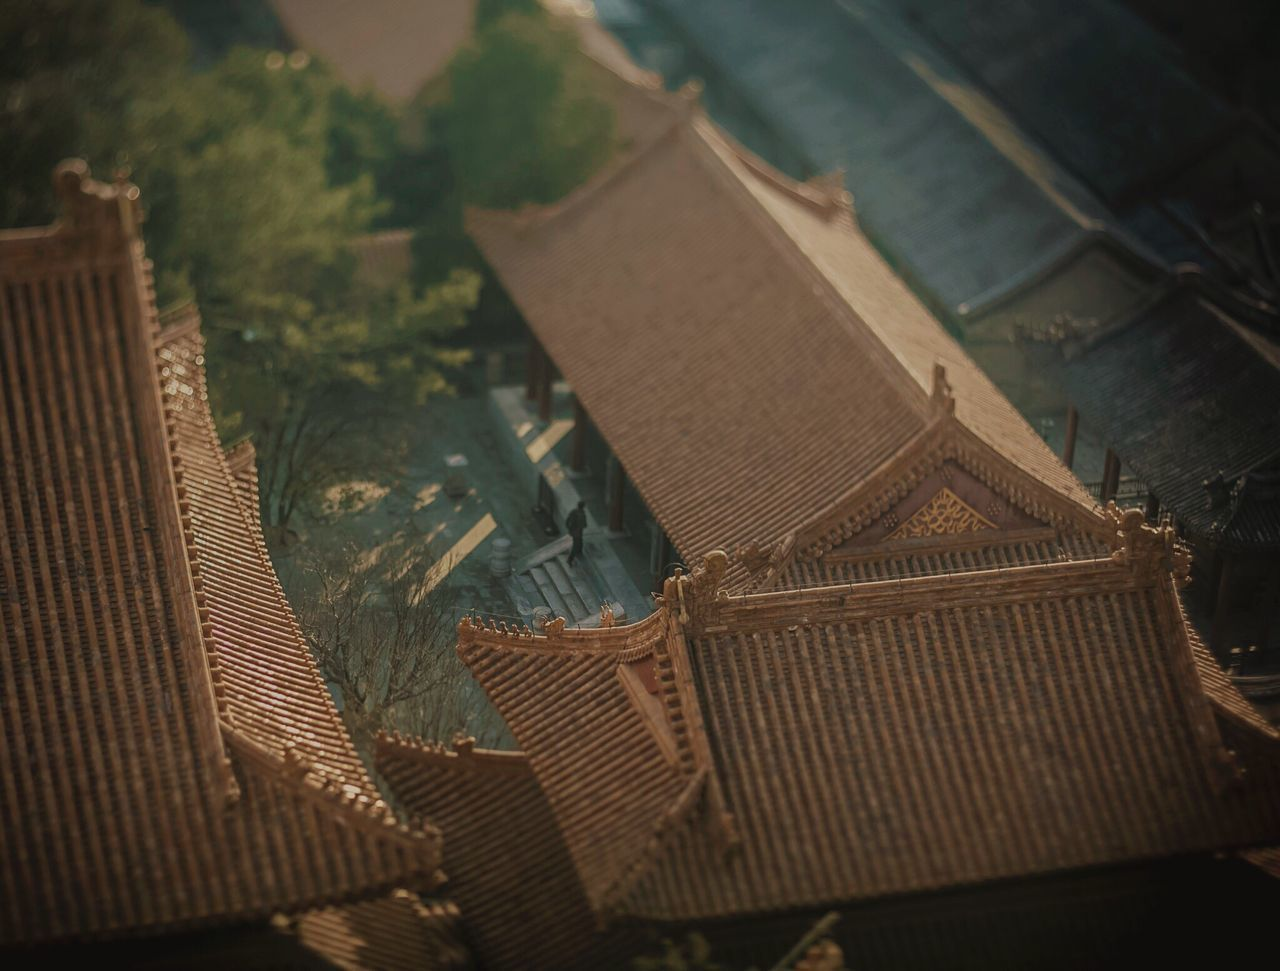 Toy man in a toy palace. China Outdoors Summer Palace Summer Palace Beijing Beijing China Beijing Tiltshift Long Distance  Miniature Effect 北京 Beijing Scenes BEIJING 北京 Architecturephotography The Architect - 2017 EyeEm Awards